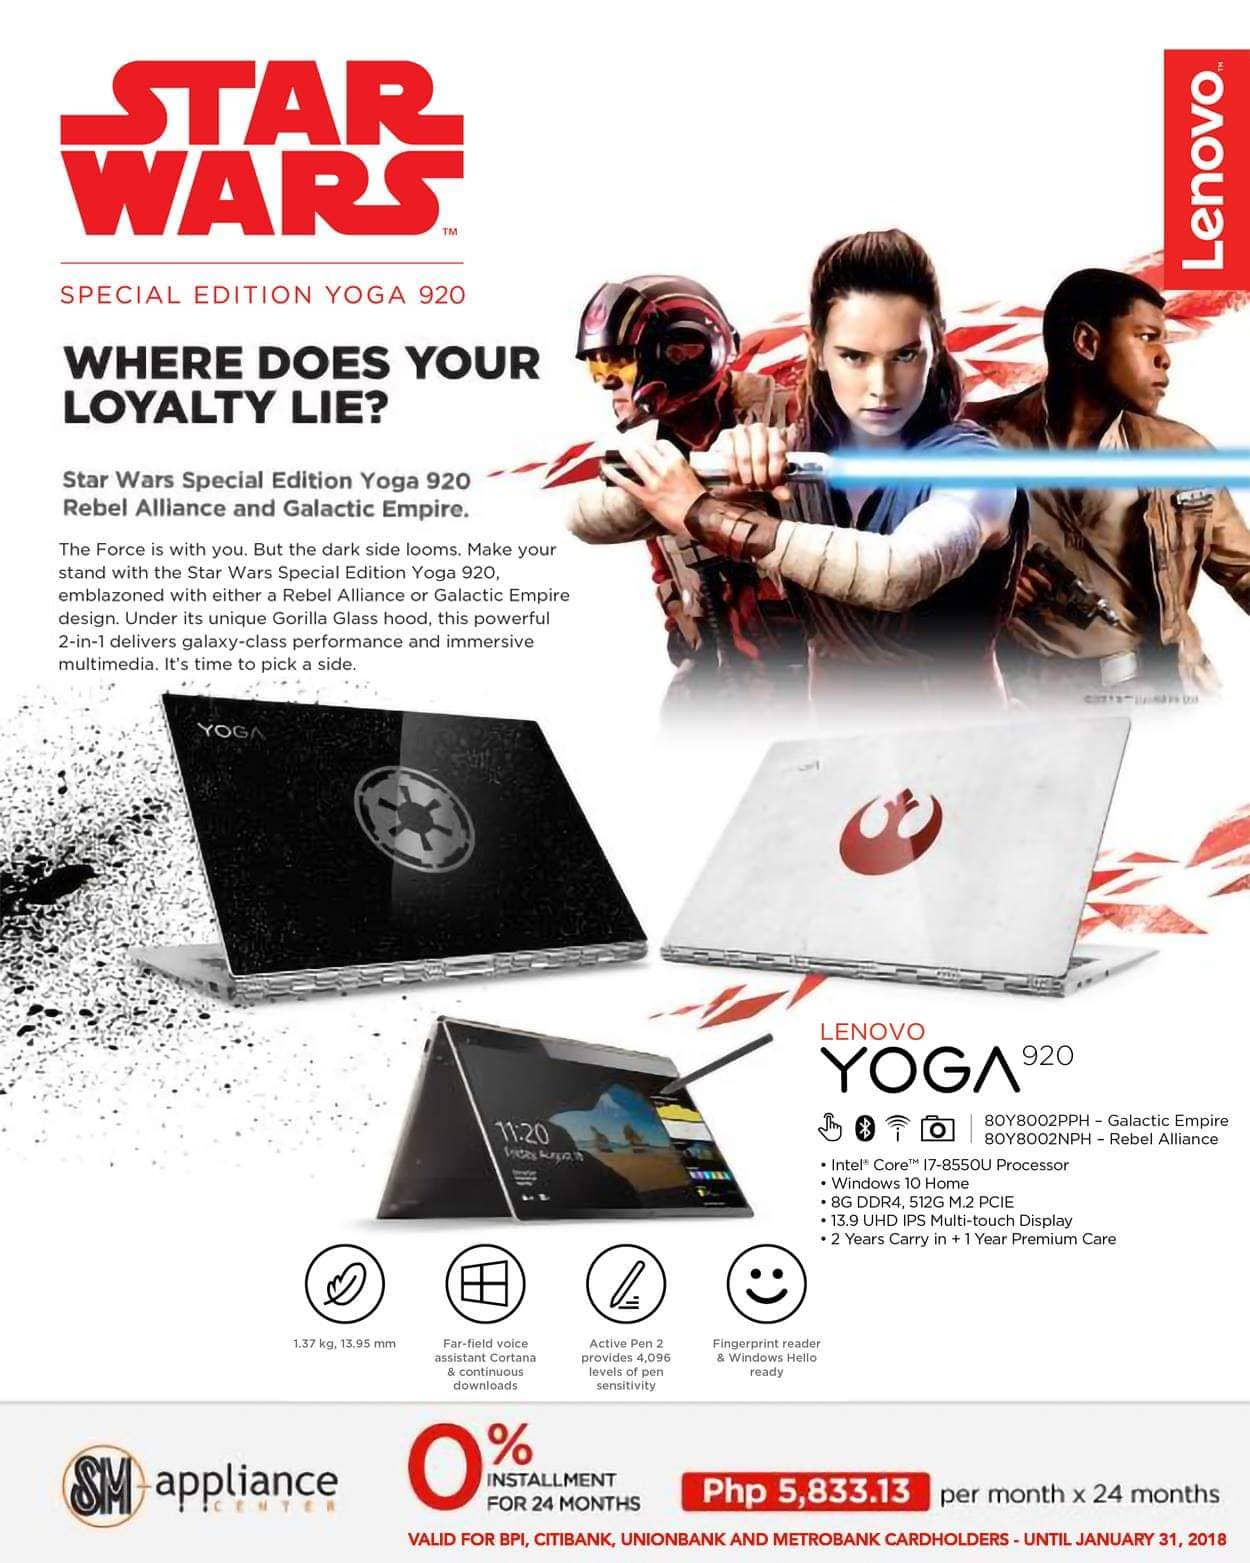 lenovo yoga 920 star wars, Lenovo Yoga 920 Galactic Empire and Rebel Alliance are massively on sale RIGHT NOW!, Gadget Pilipinas